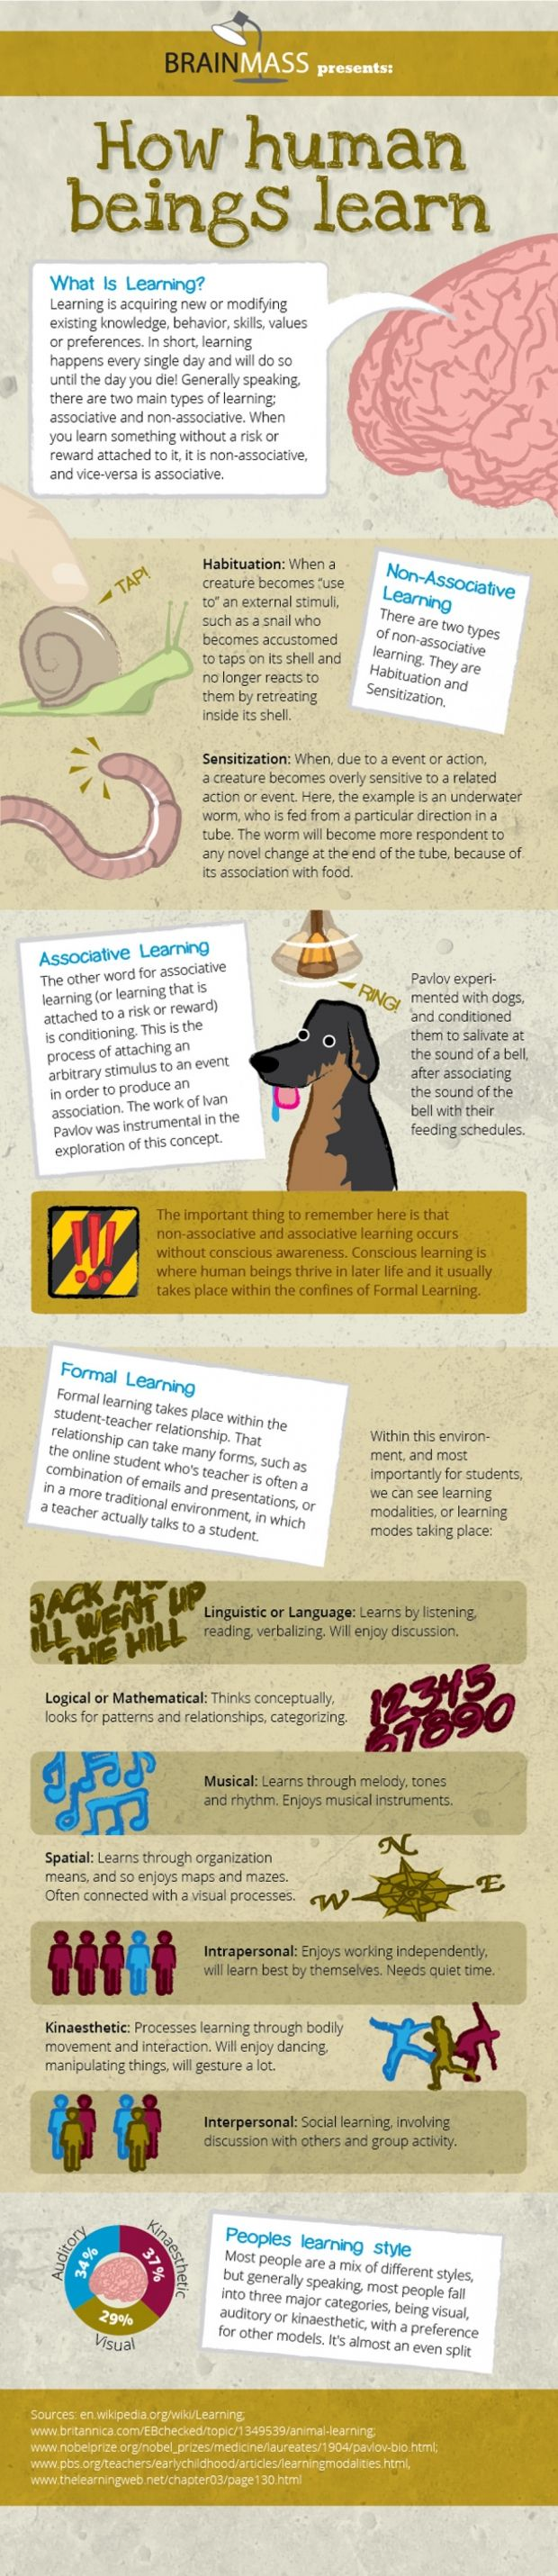 How Human Beings Learn #learning #education #instructionaldesign